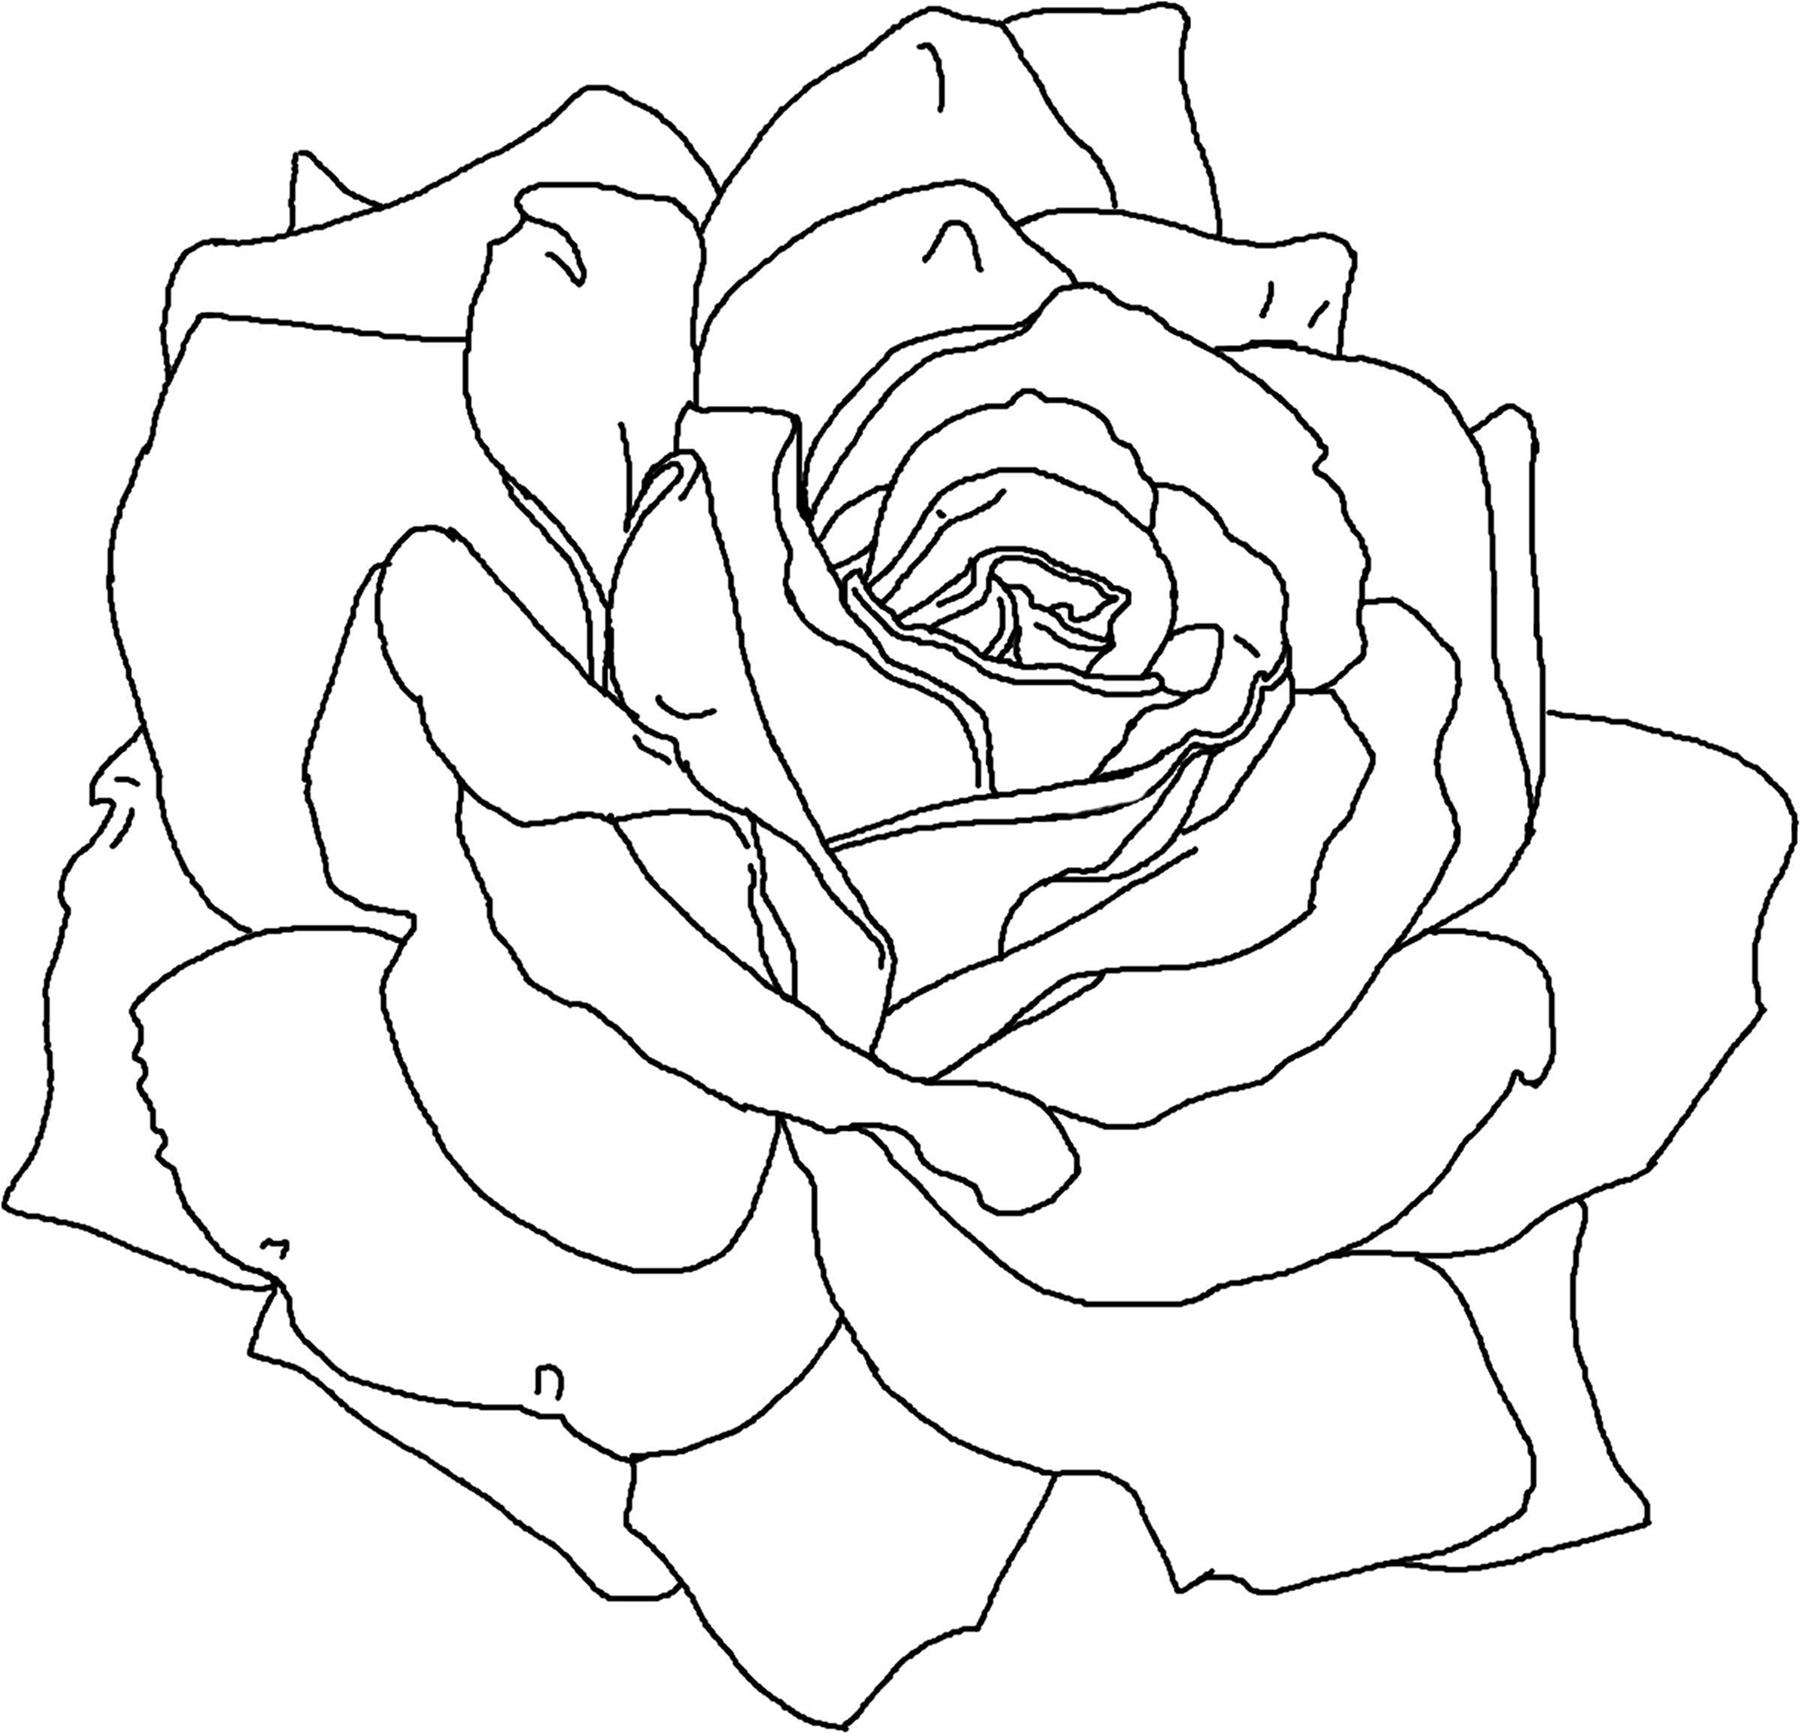 coloring outline images of flowers free printable flower coloring pages for kids best images of coloring flowers outline